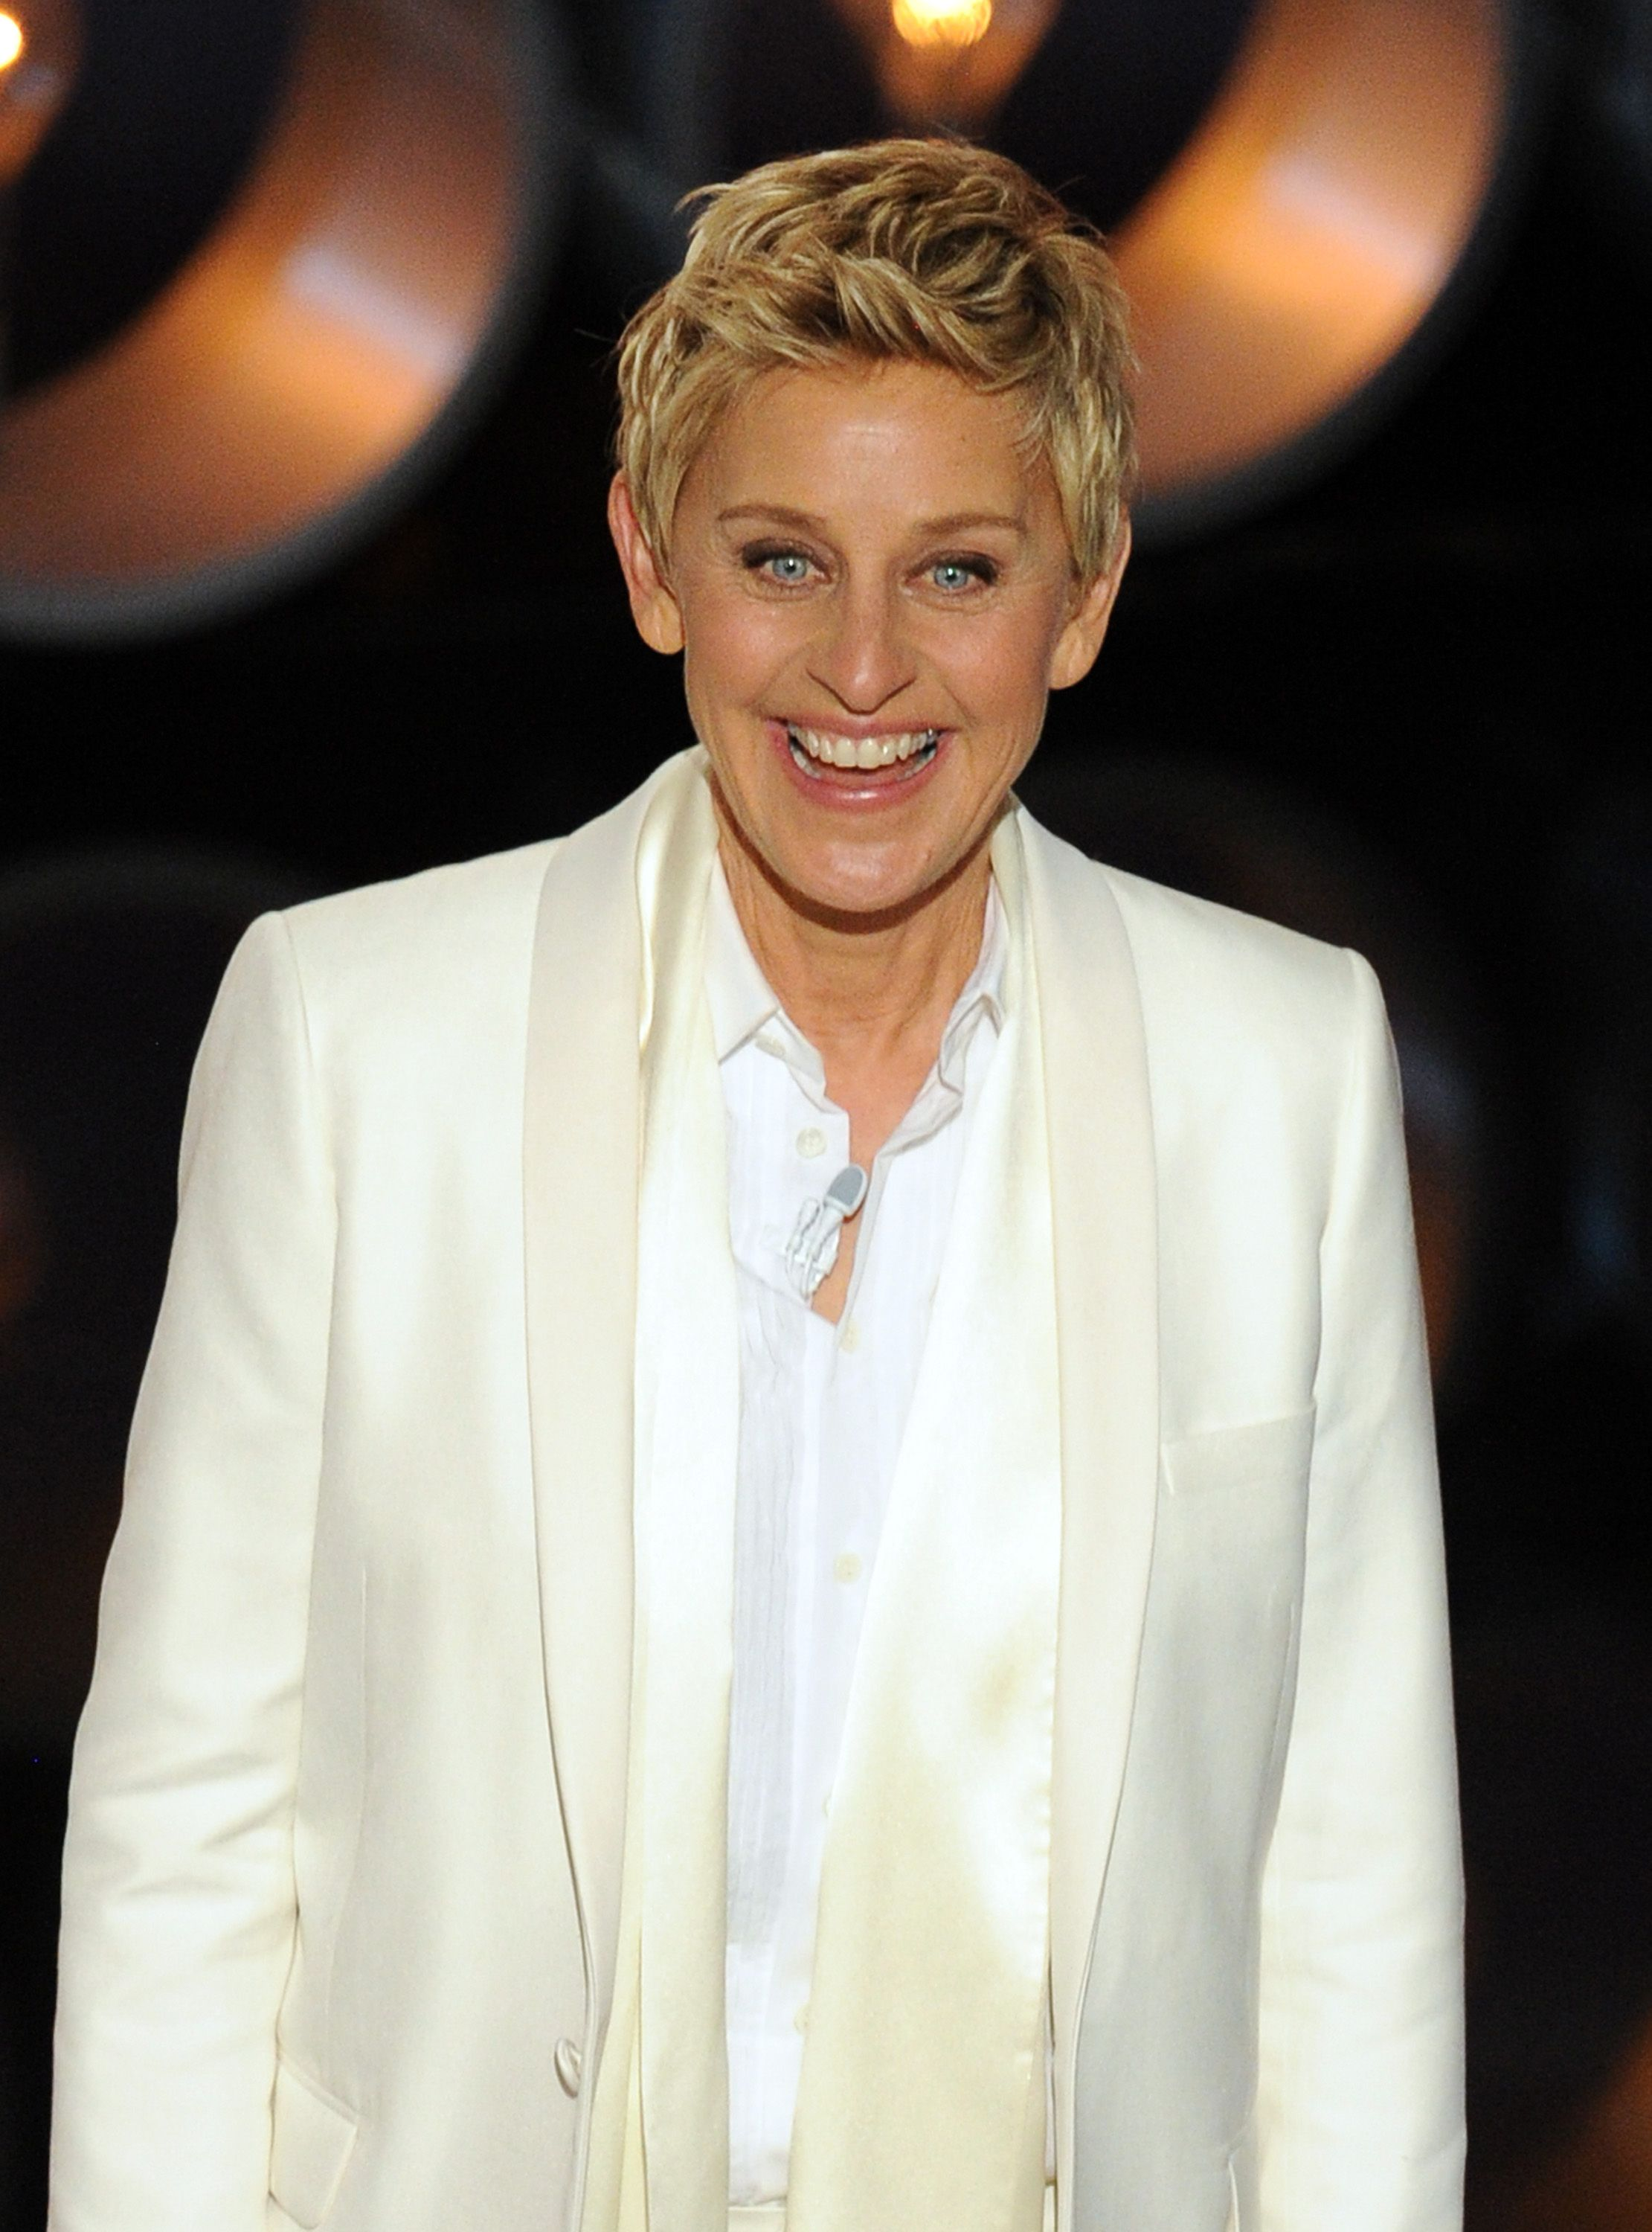 Ellen DeGeneres speaks onstage at the Oscars at the Dolby Theatre on March 2, 2014 | Photo: Getty Images